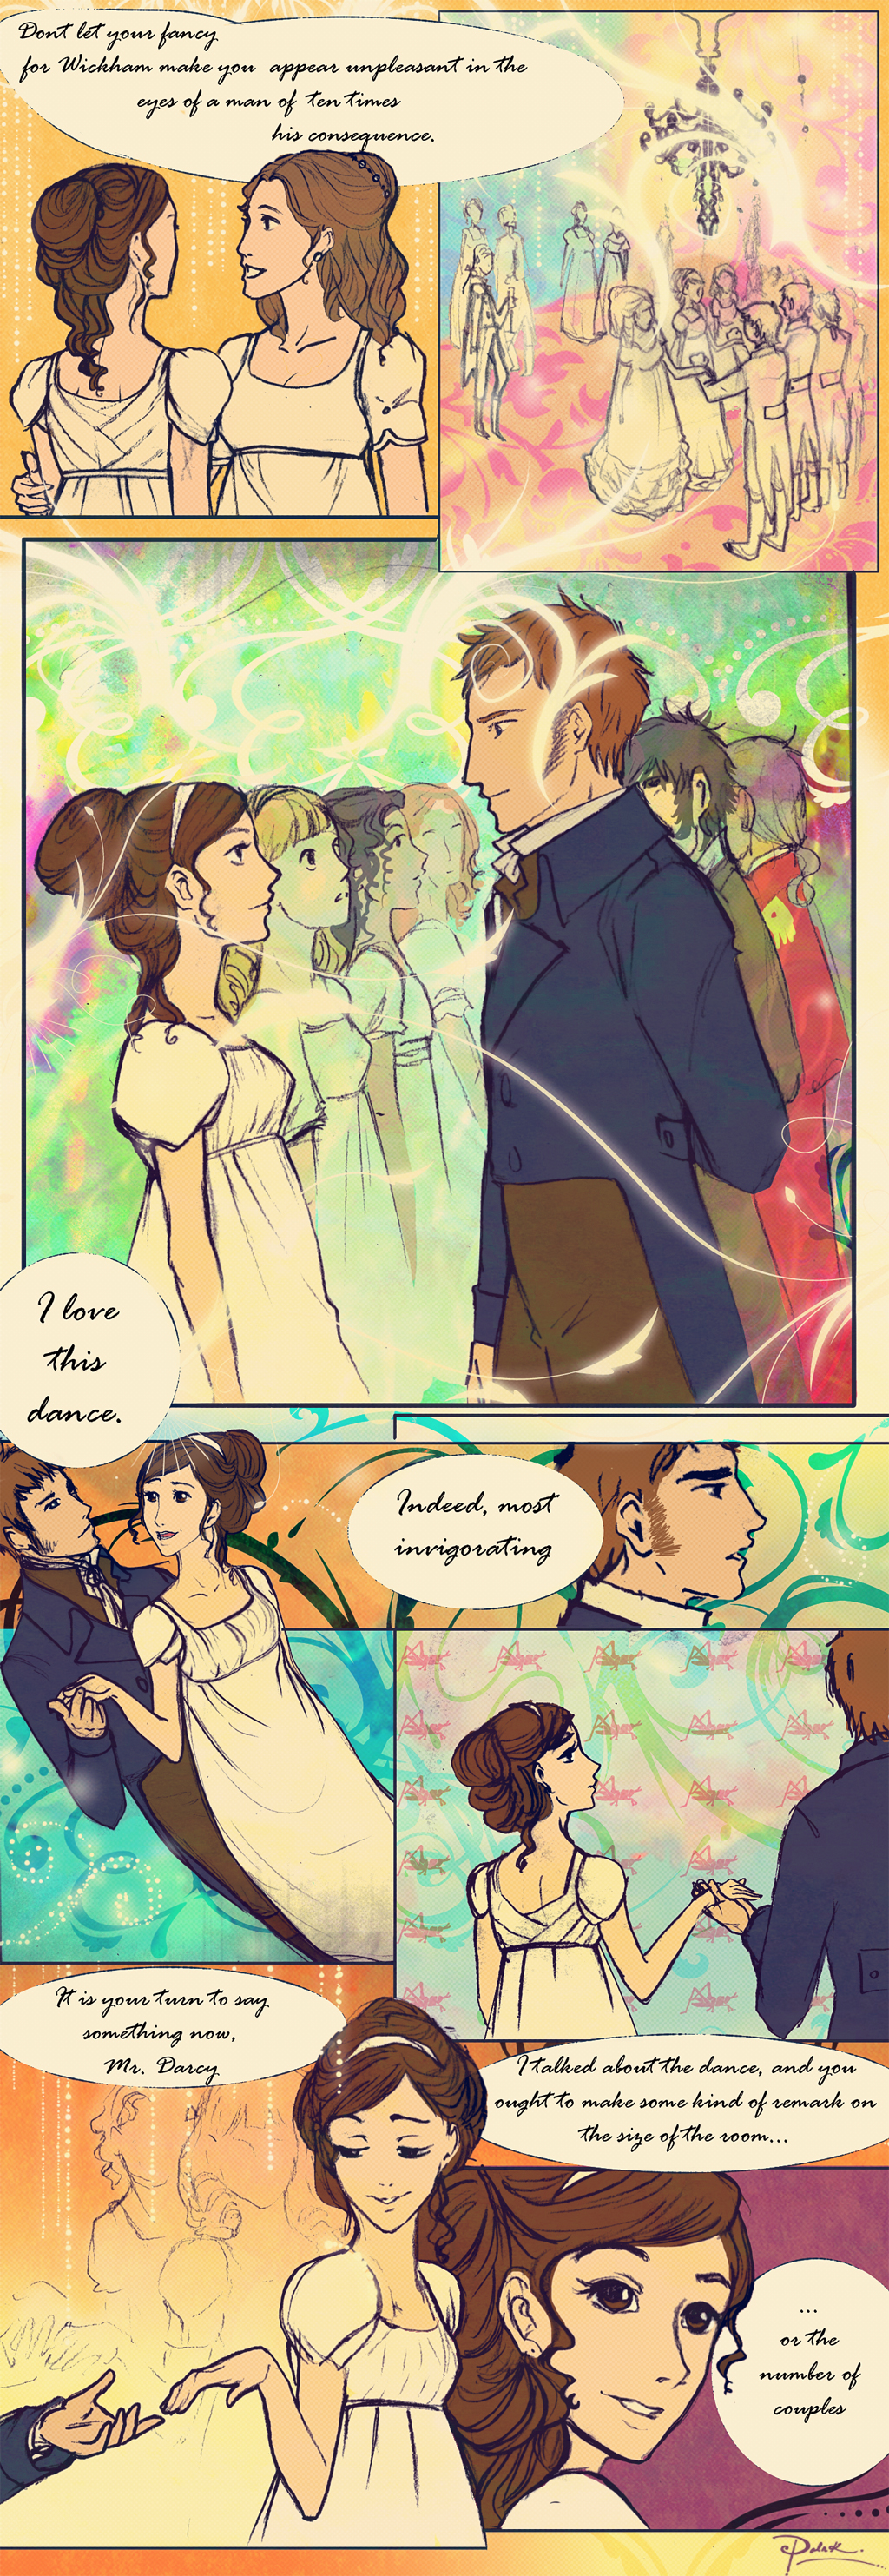 Netherfield ball page 2